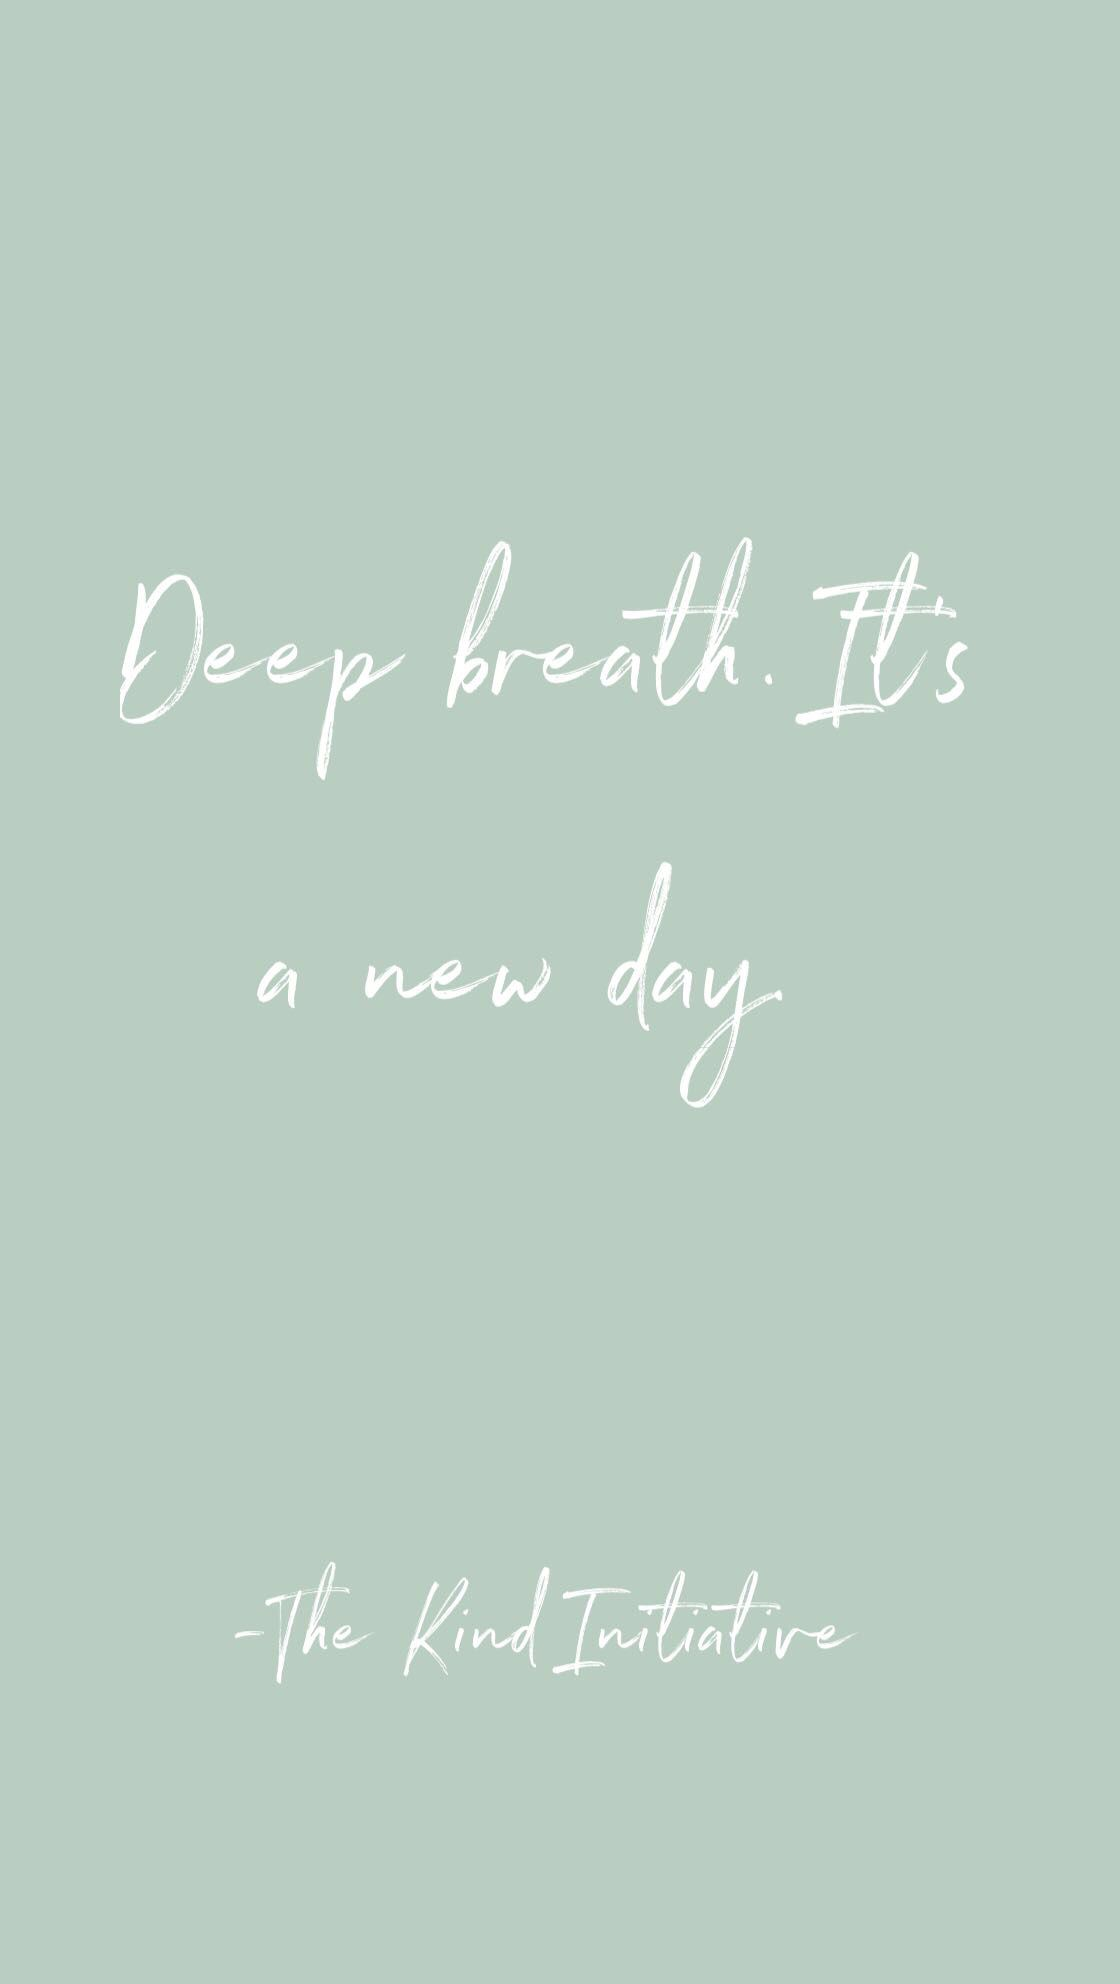 Inspirational Quotes Inspirational Quotes Self Love Motivation Truth Positive Quotes Wallpaper New Day Quotes Wellbeing Quotes